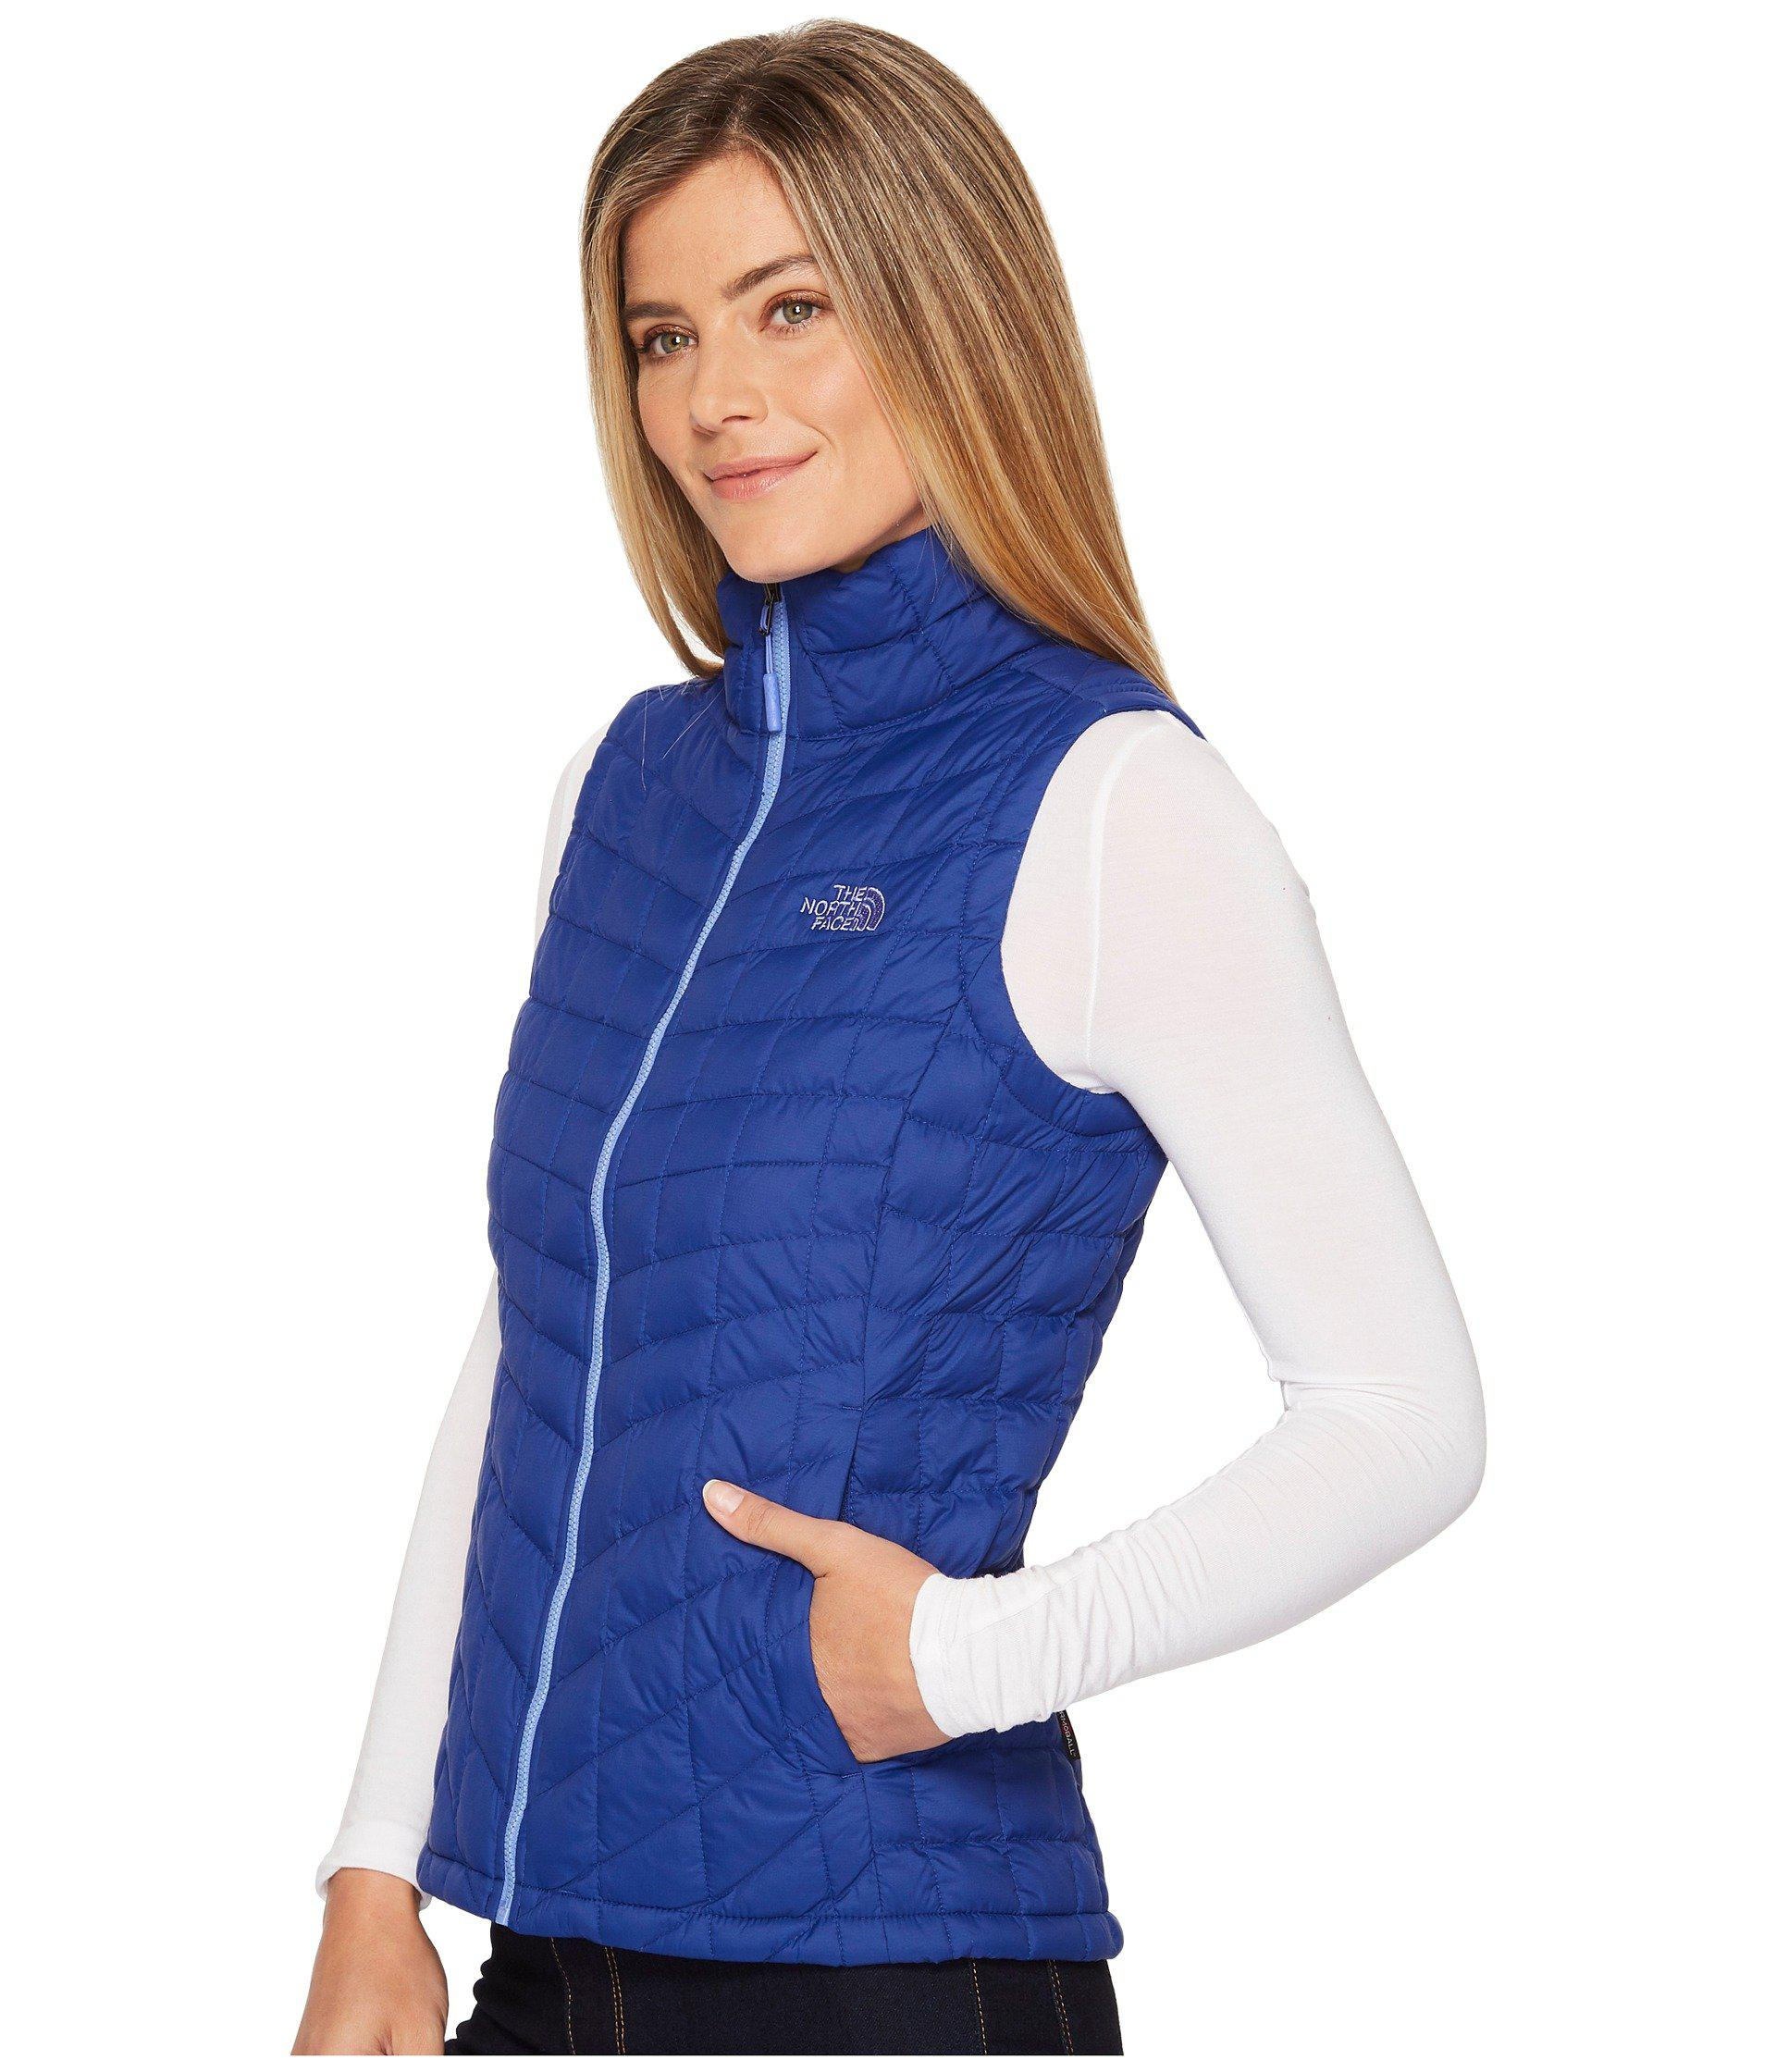 7035e1a0a1 ... best price lyst the north face thermoball vest porcelain green womens  vest in blue a1cd0 fca5f